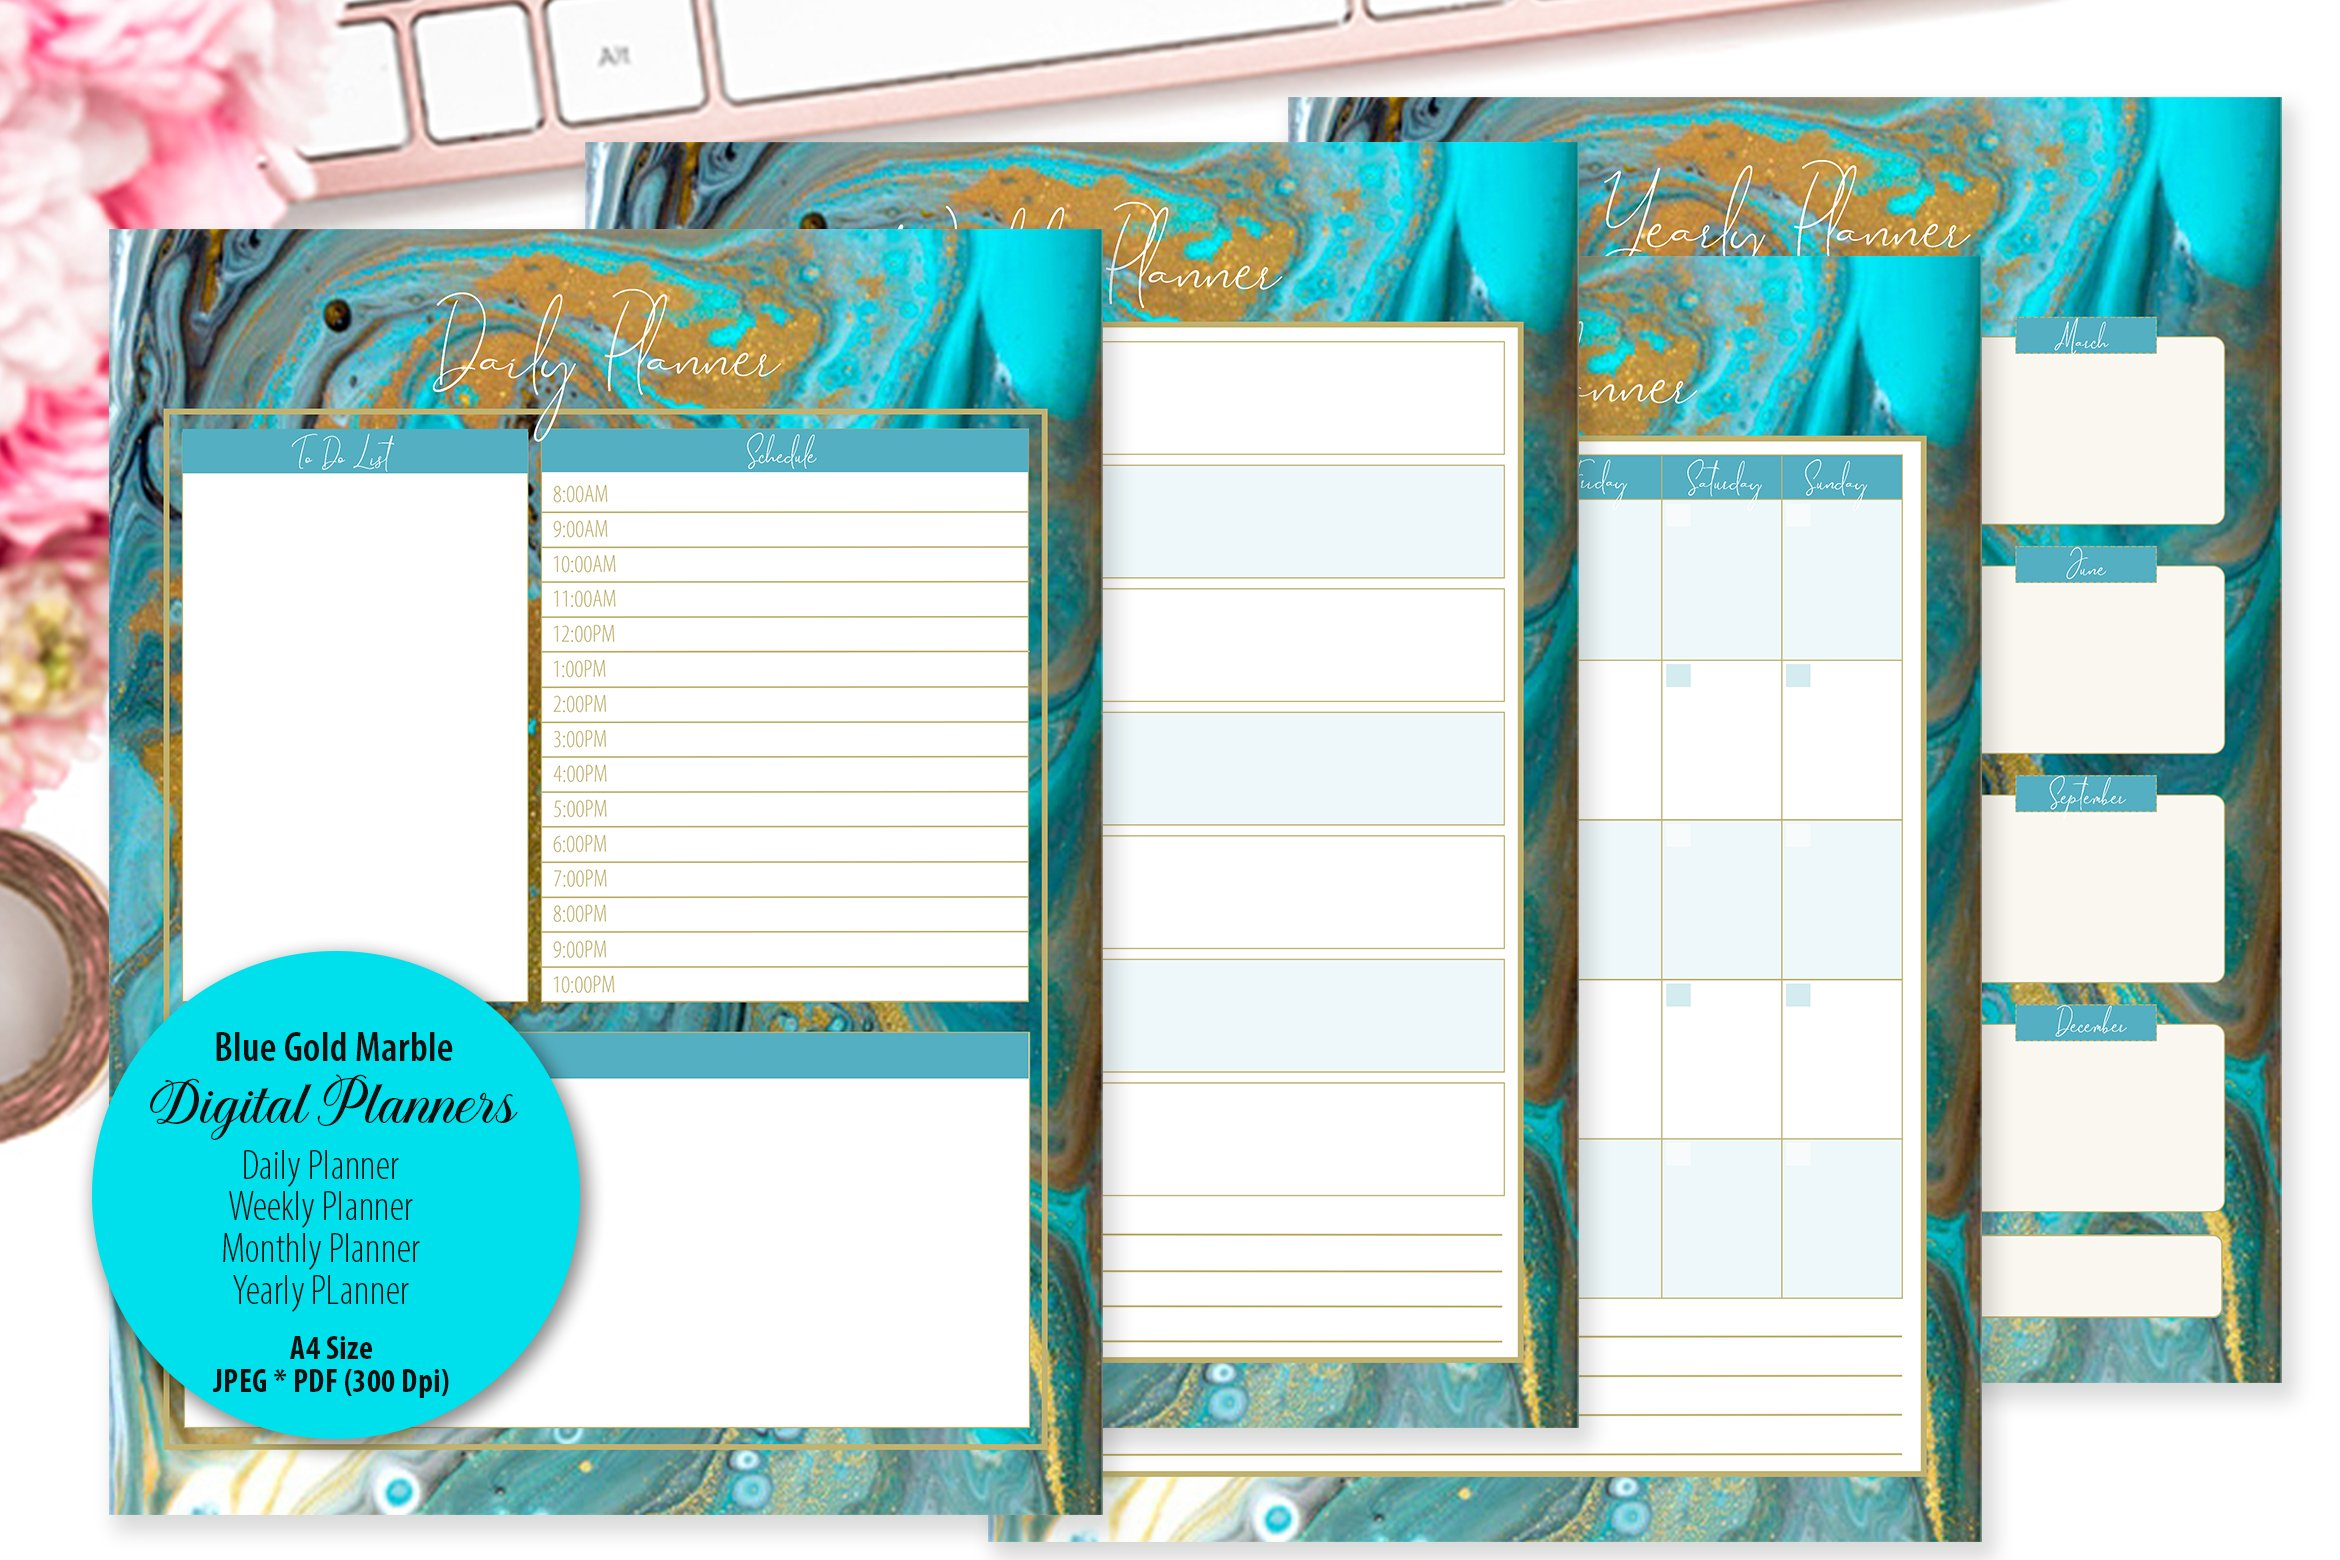 Blue Gold Marble Digital Planner example image 1